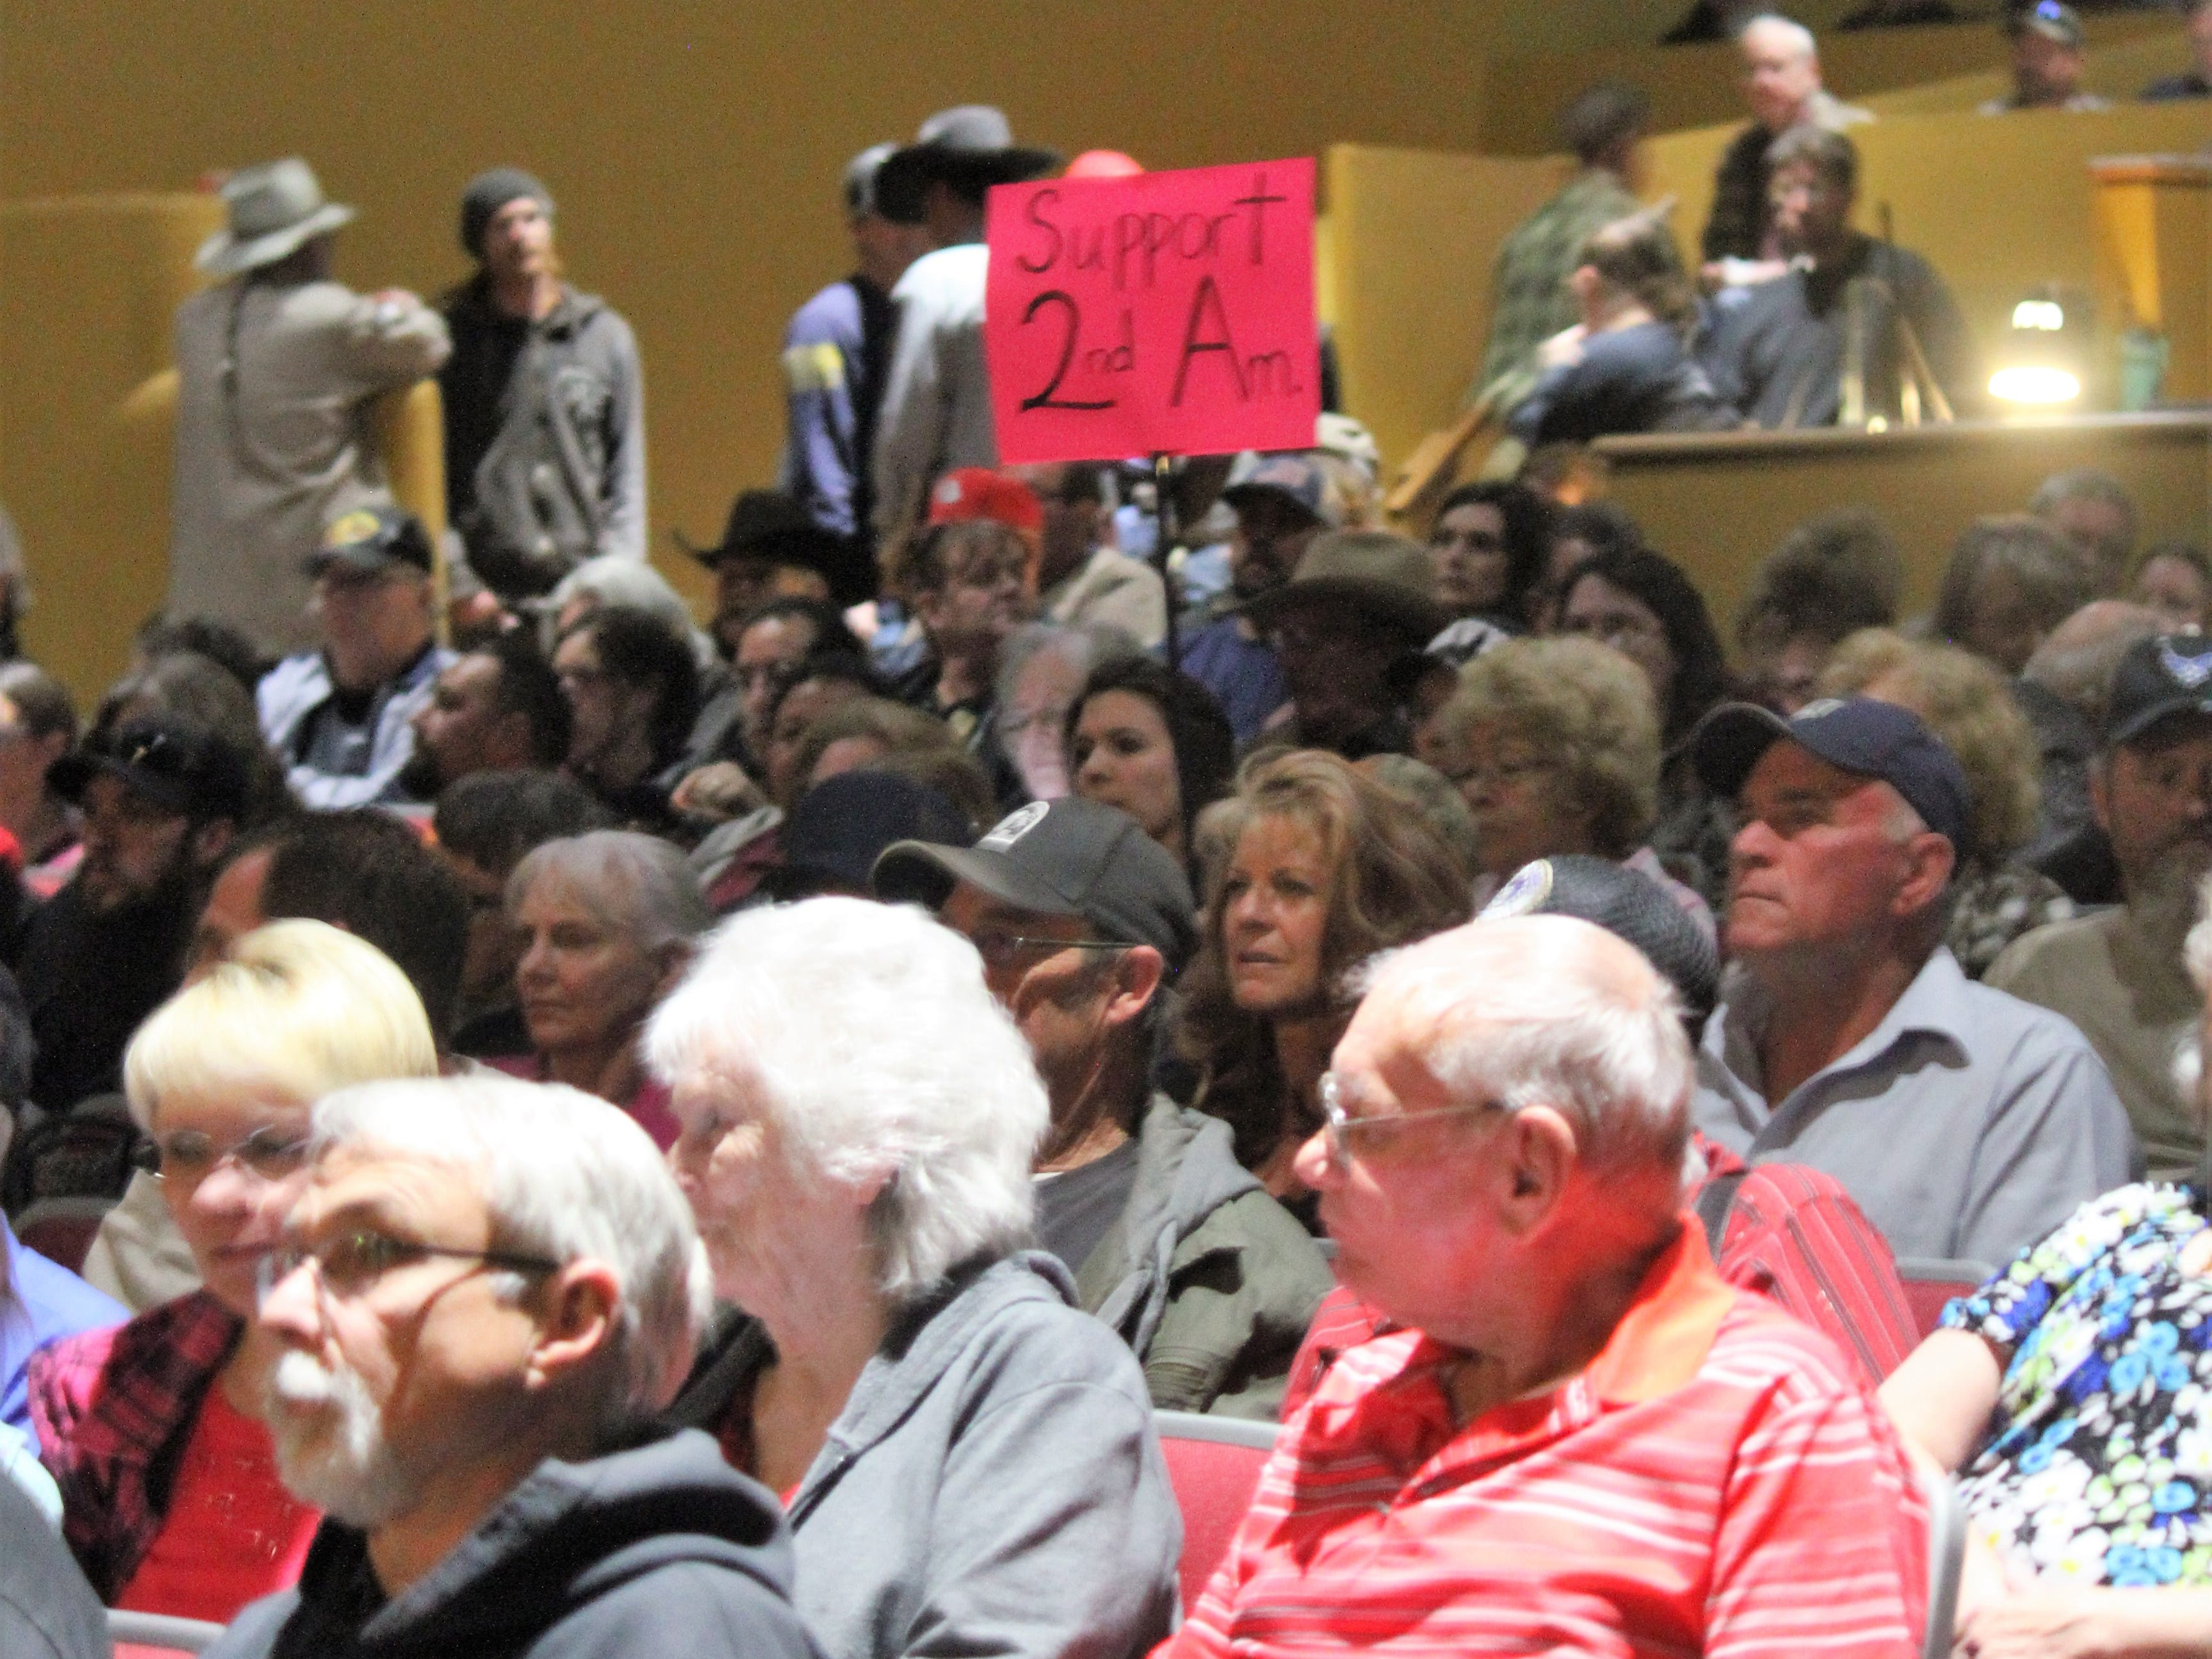 The crowd of more than 500 people settle in before the Otero County Commission Special Meeting reconvened at the Flickinger Center for the Performing Arts Monday. The commission had to change to a larger venue to accommodate the more than 500 people who wanted to see the county declare itself a Second Amendment Sanctuary County.